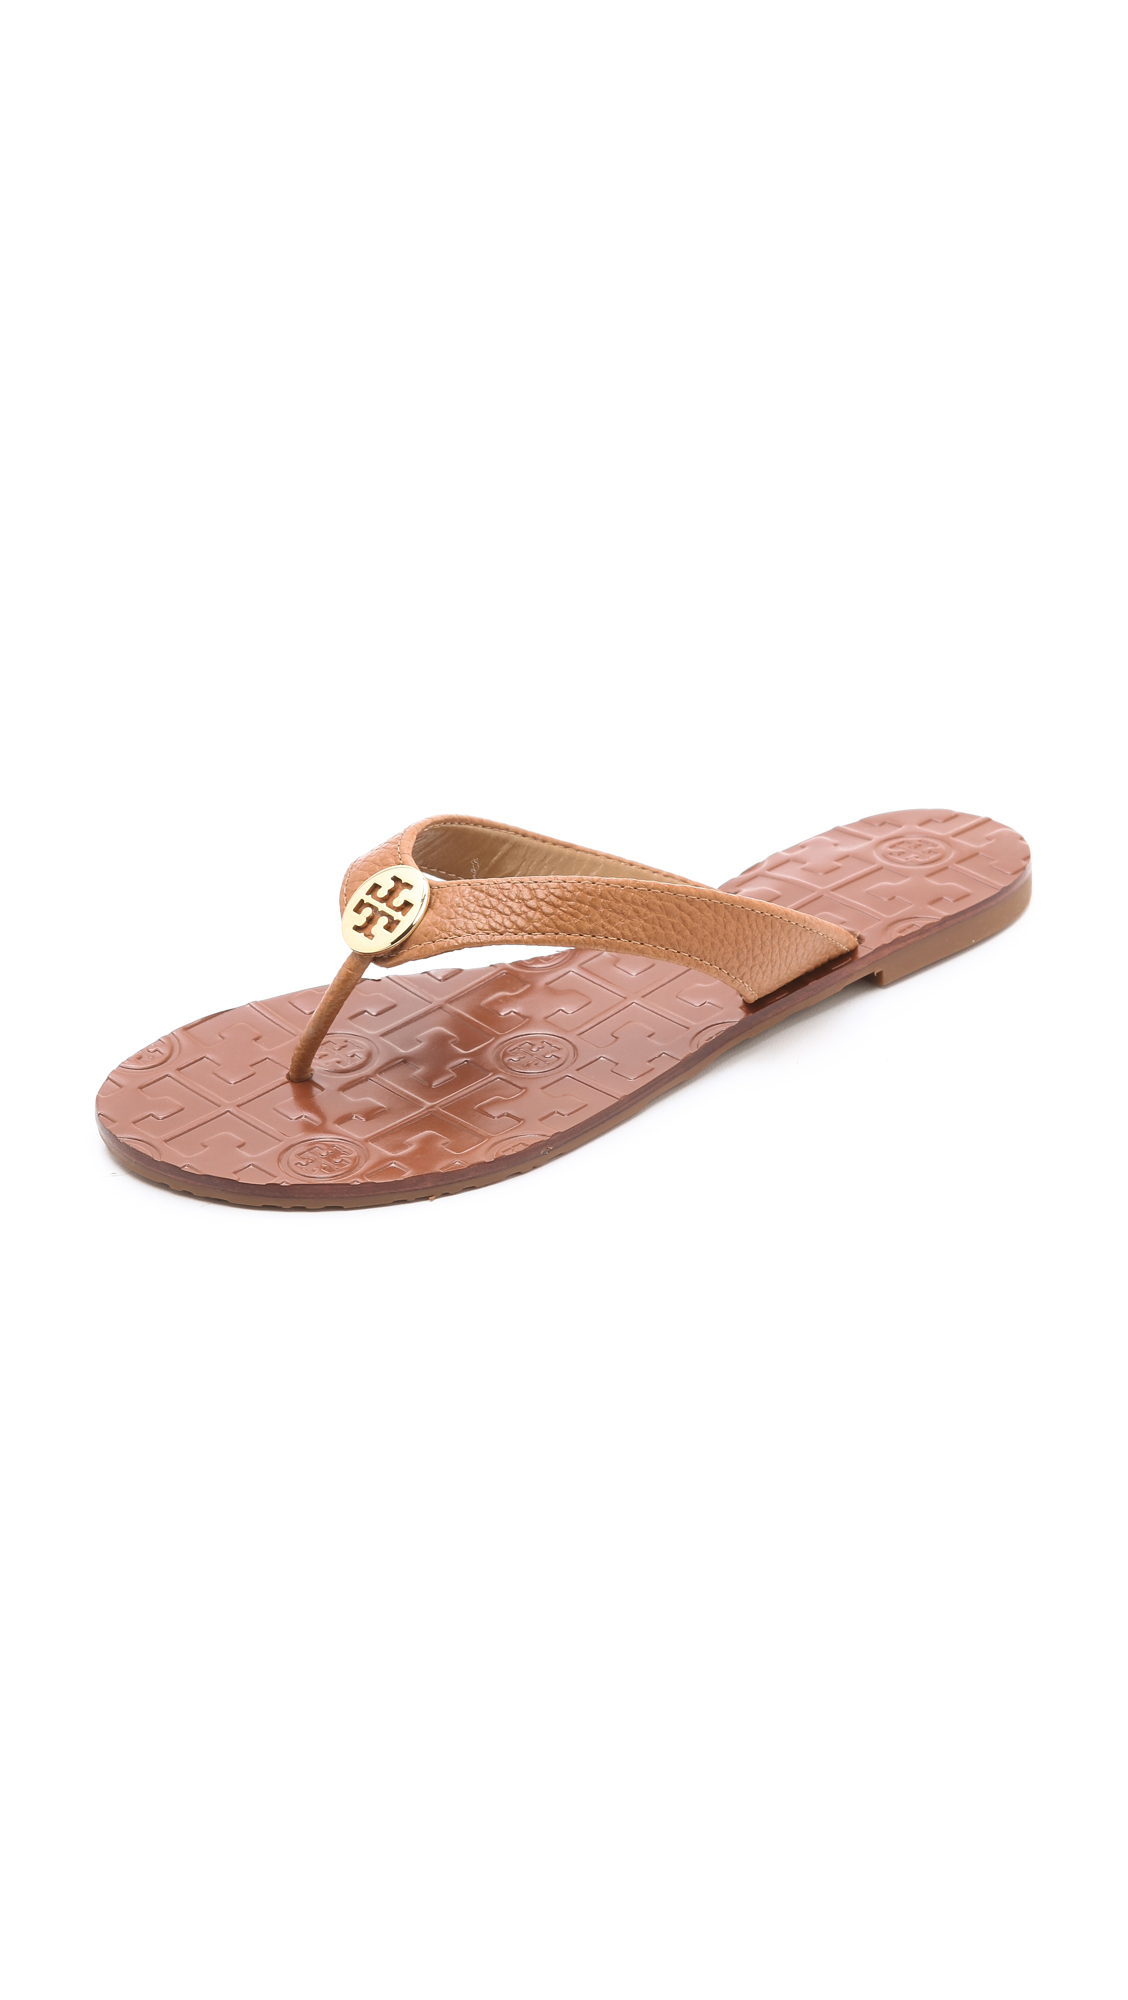 782e75ae3 Tory Burch Thora Flat Thong Sandals on PopScreen